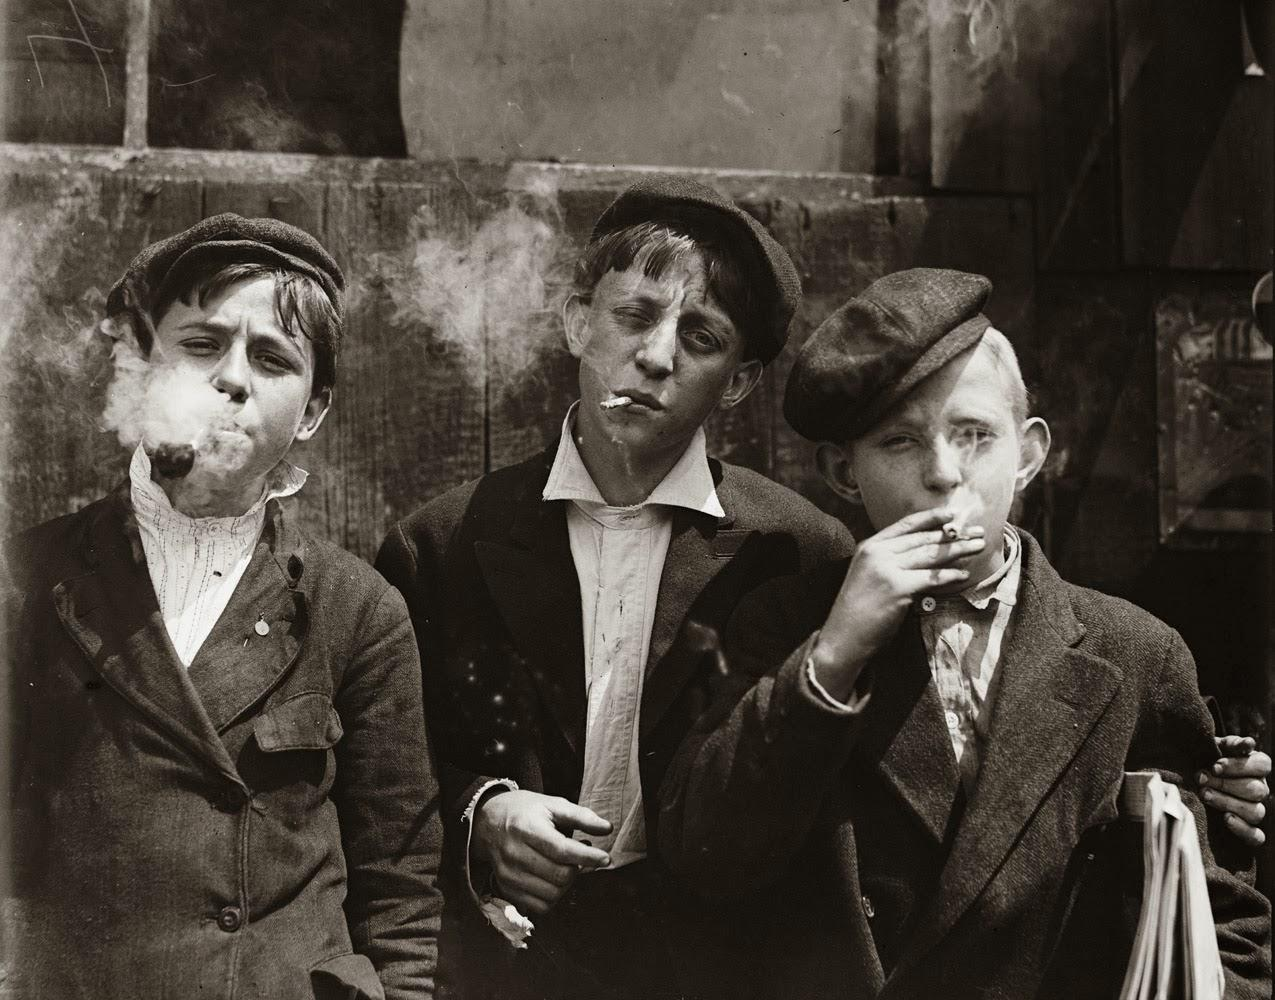 Child laborers, newsboys smoking cigarettes, 1910 http://t.co/2AMpcTRI7A